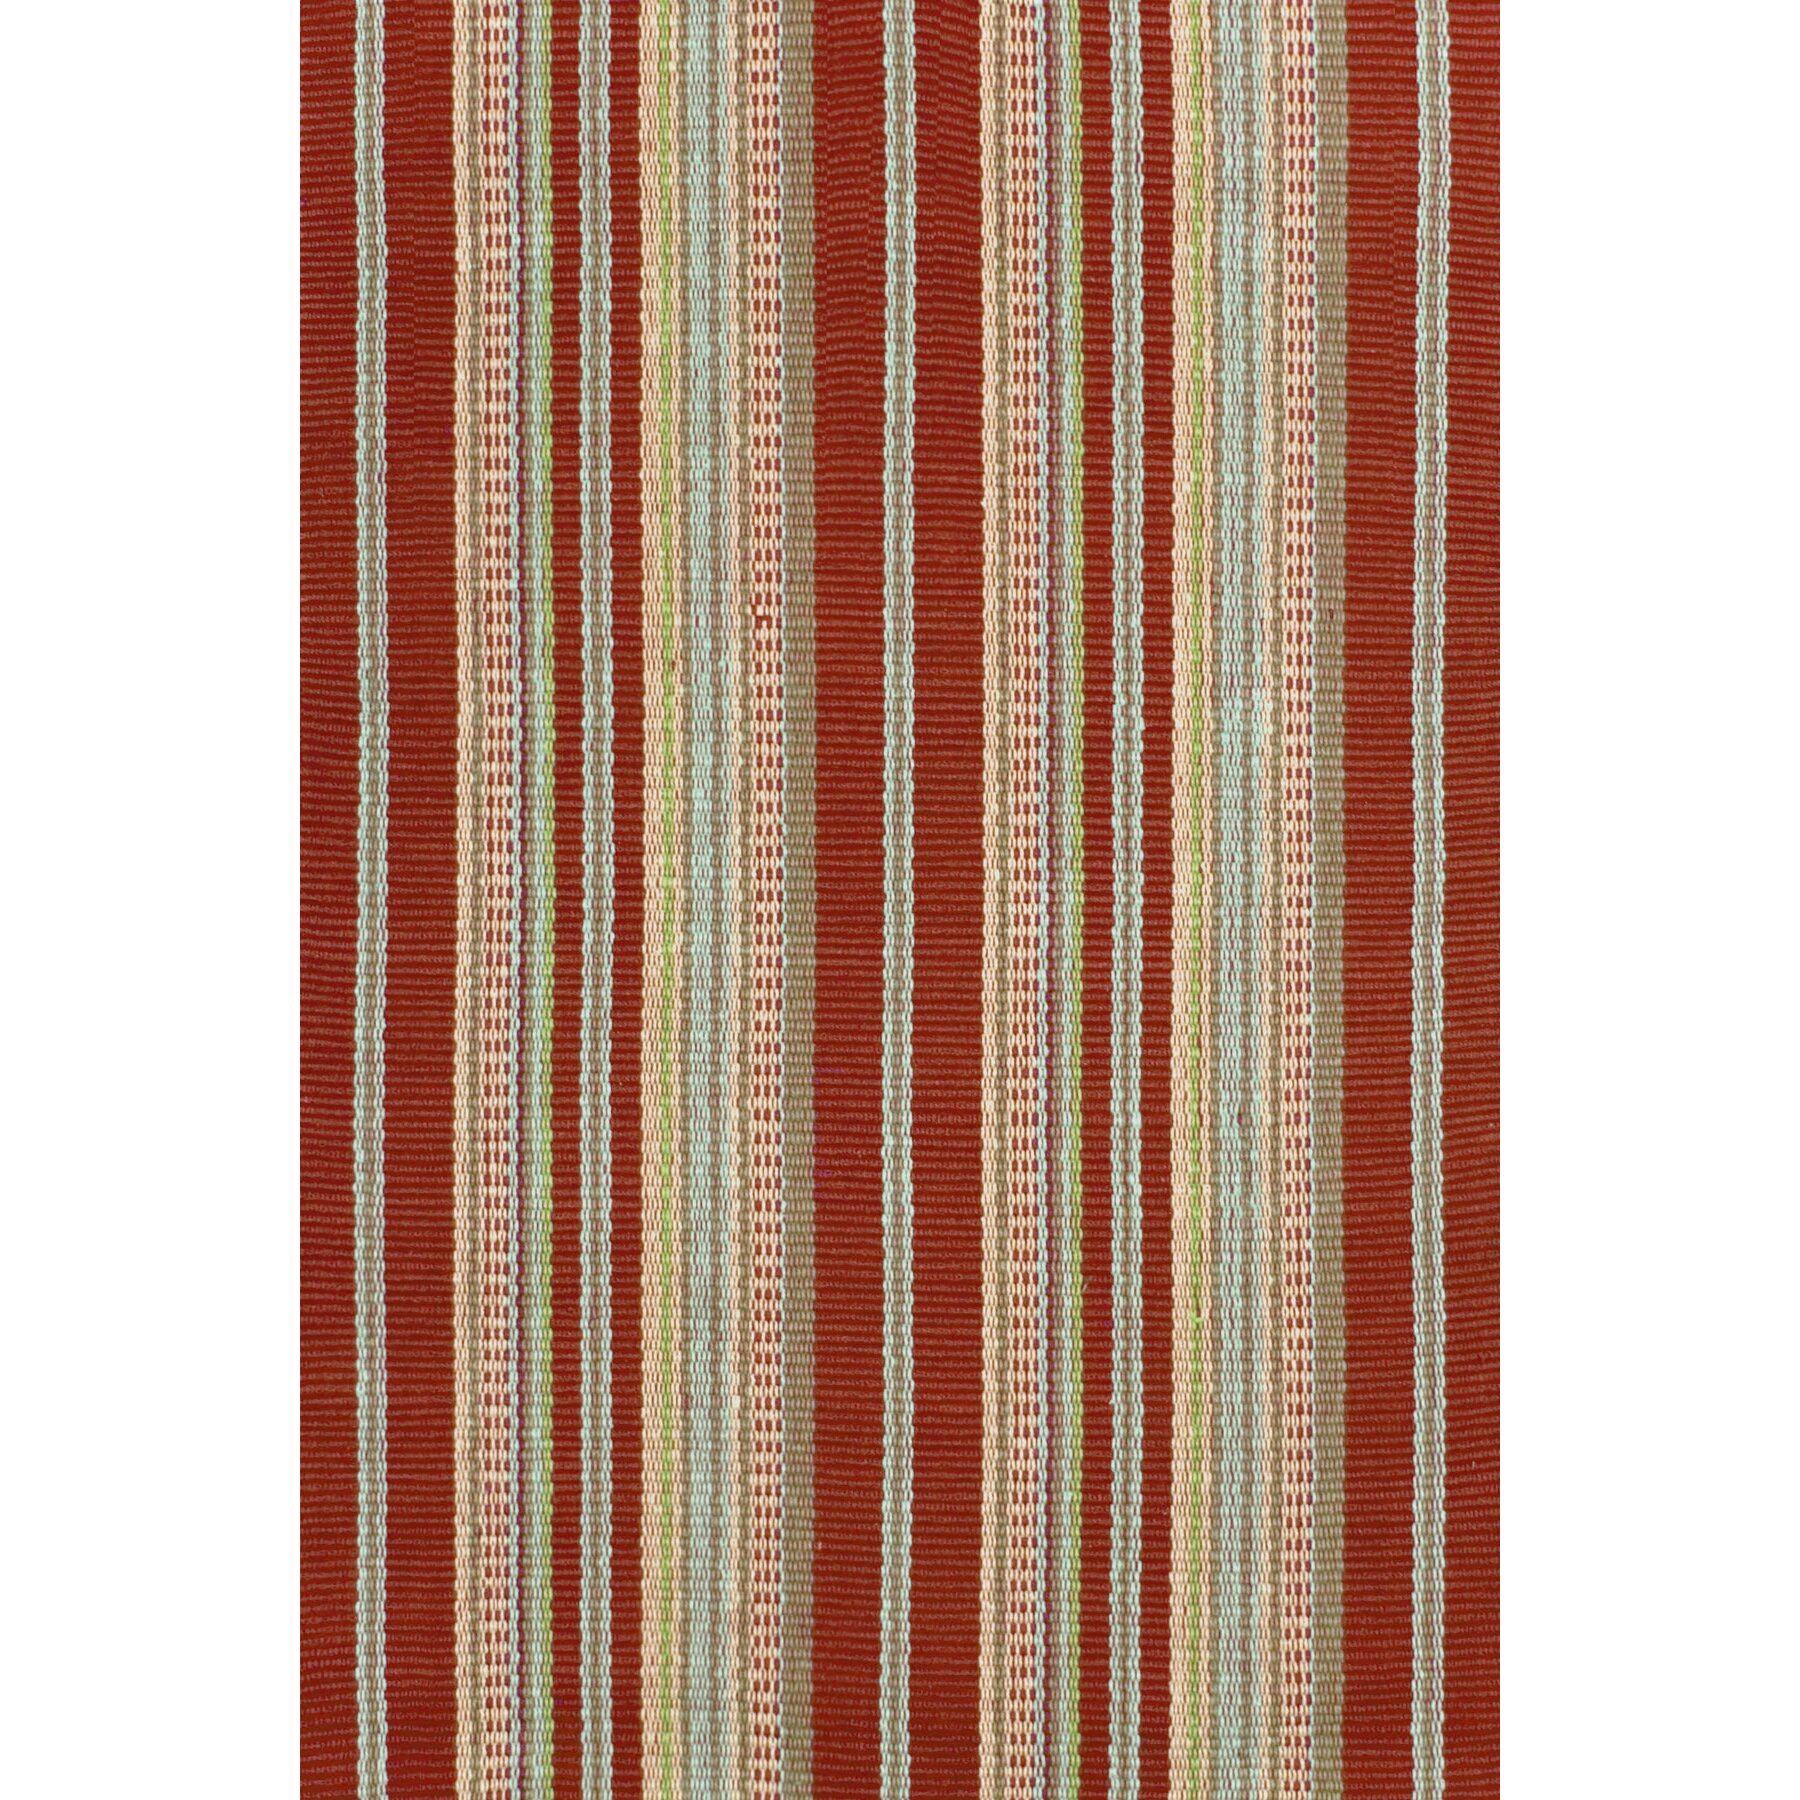 Woven Area Rugs Home Decor